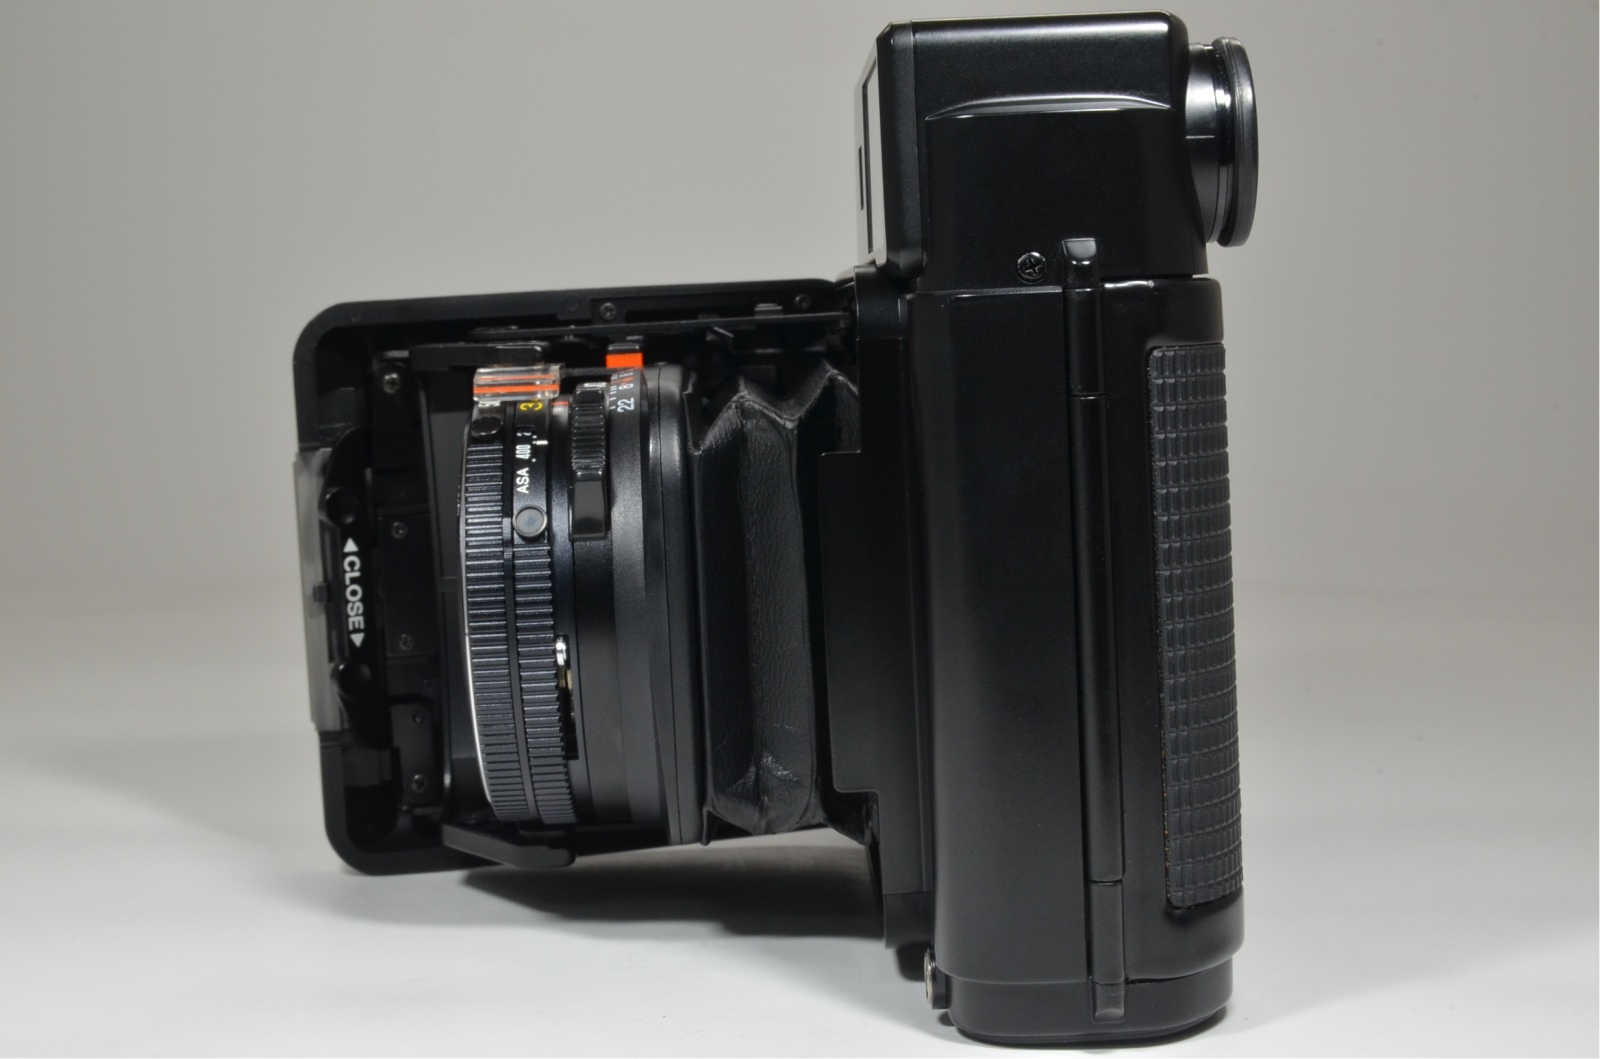 fujifilm fujica gs645 medium format film camera 75mm f3.4